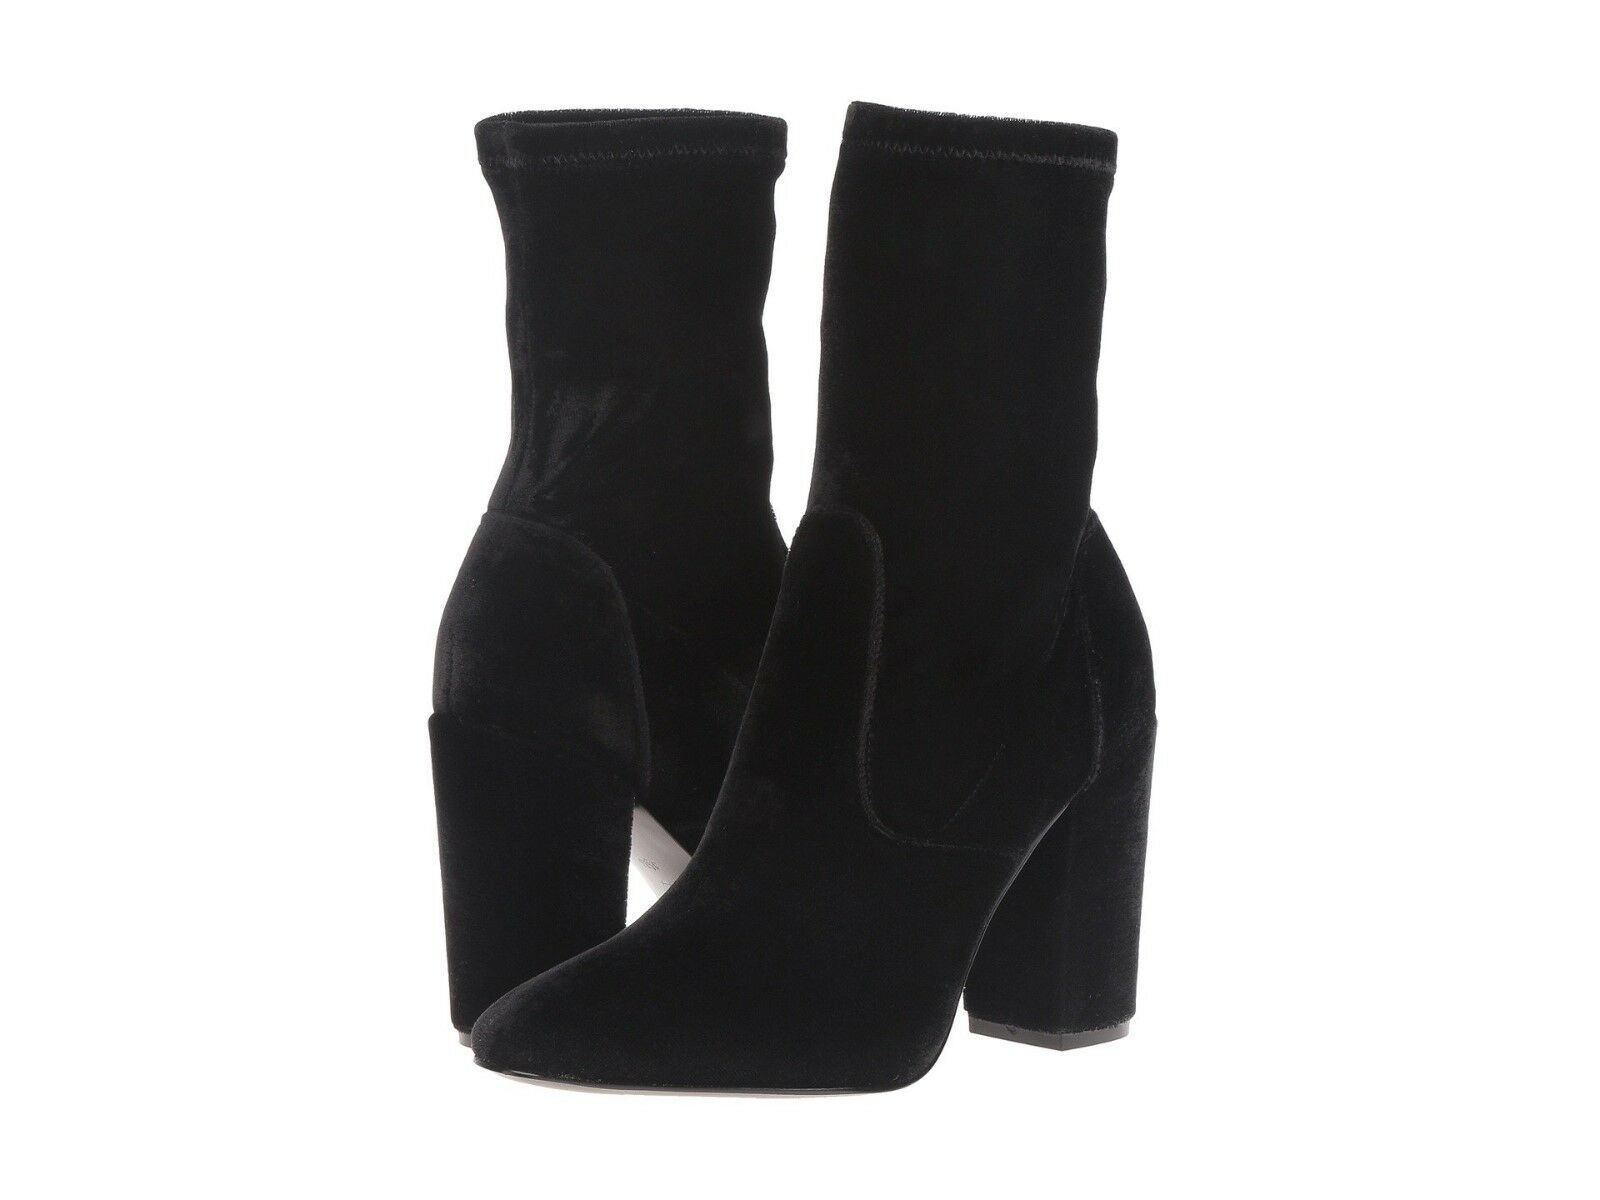 Ivanka Trump Women's Boots Lynna Black Suede Boot Block-Heel Booties 6M